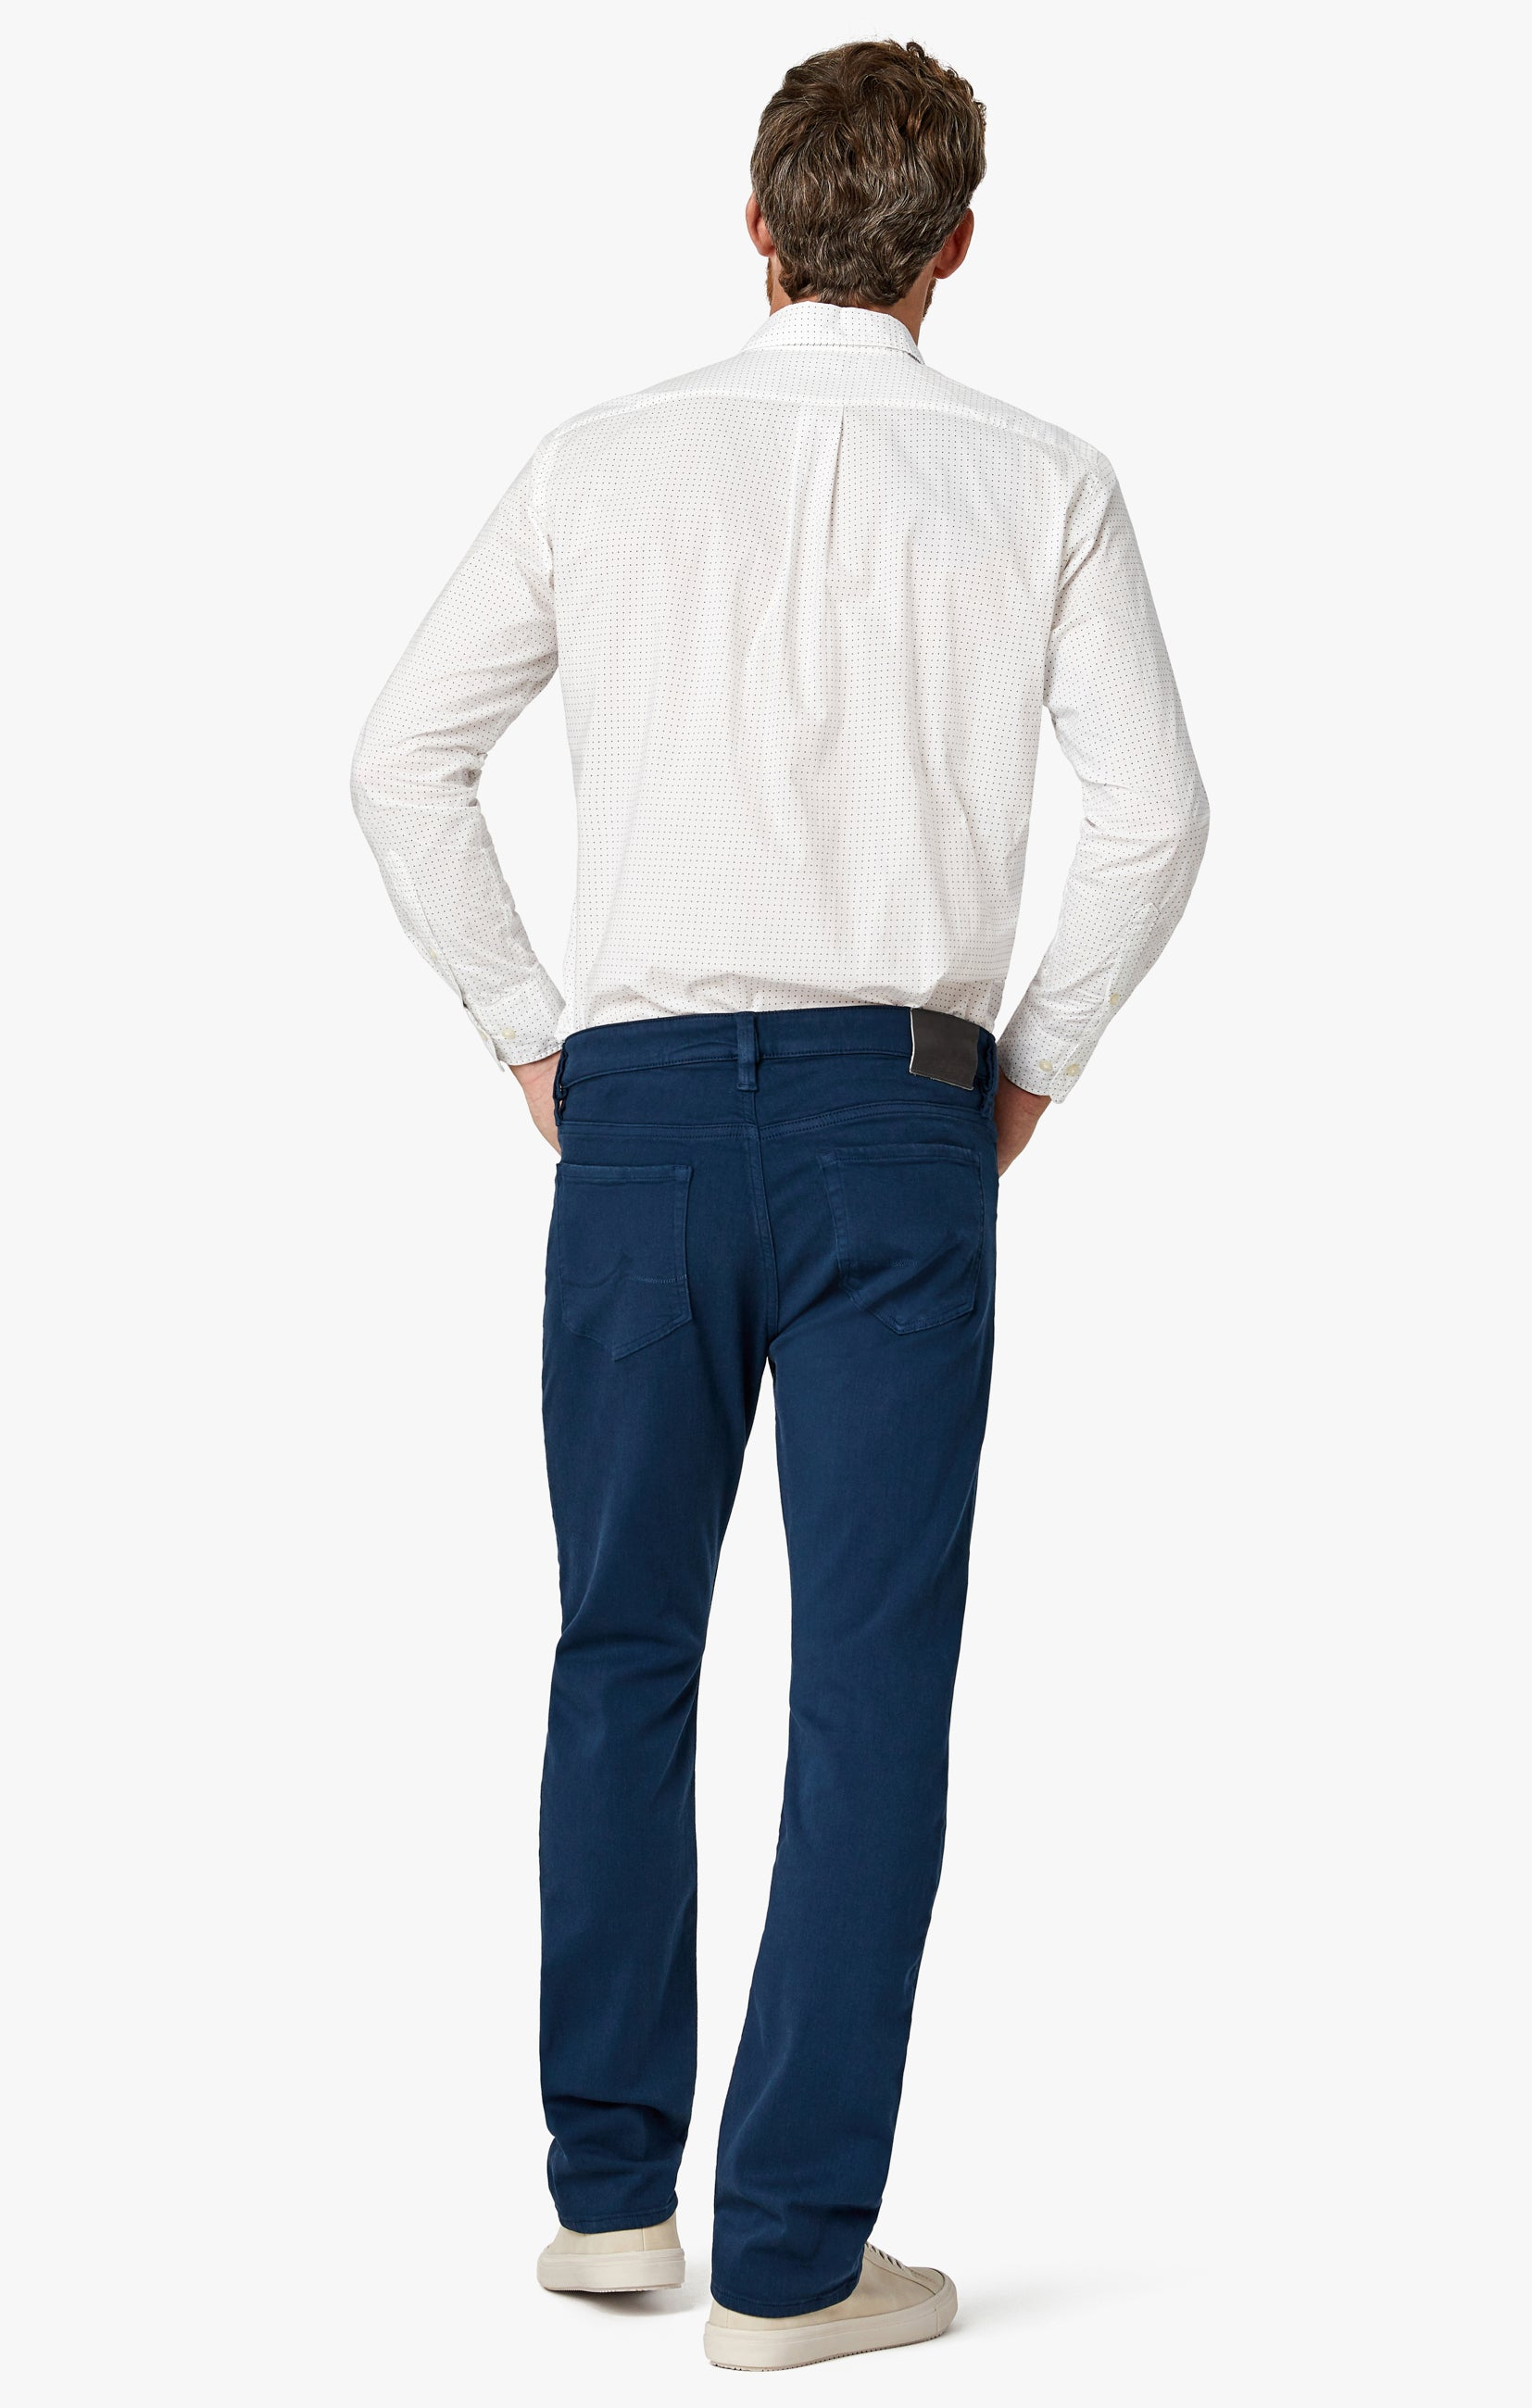 Courage Straight Leg Pants In Petrol Comfort Image 5